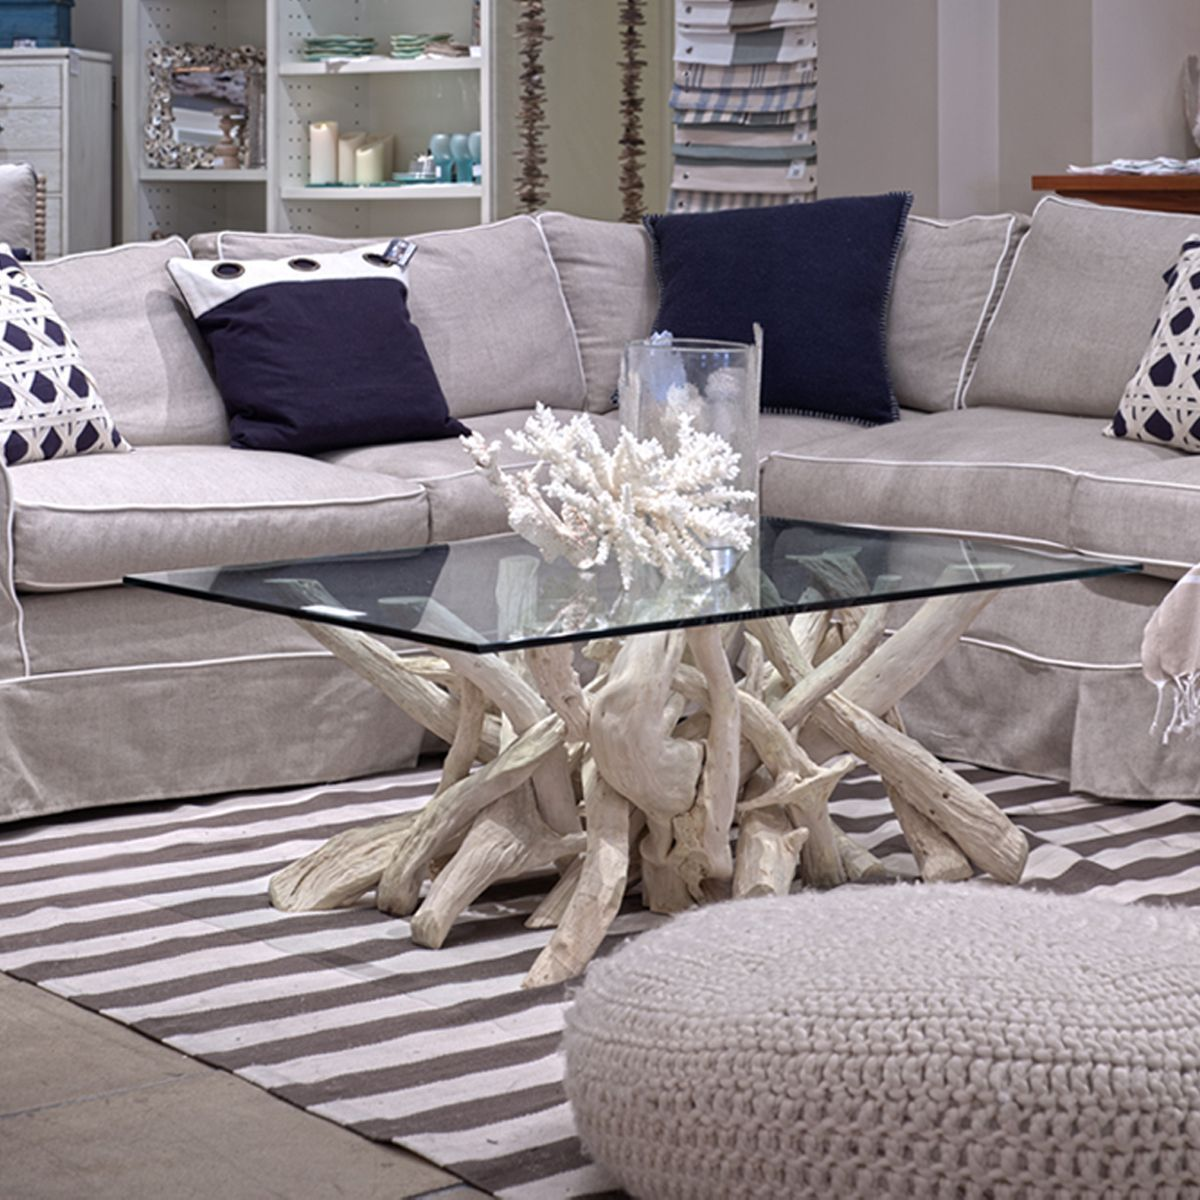 best ideas about Driftwood coffee table on Pinterest